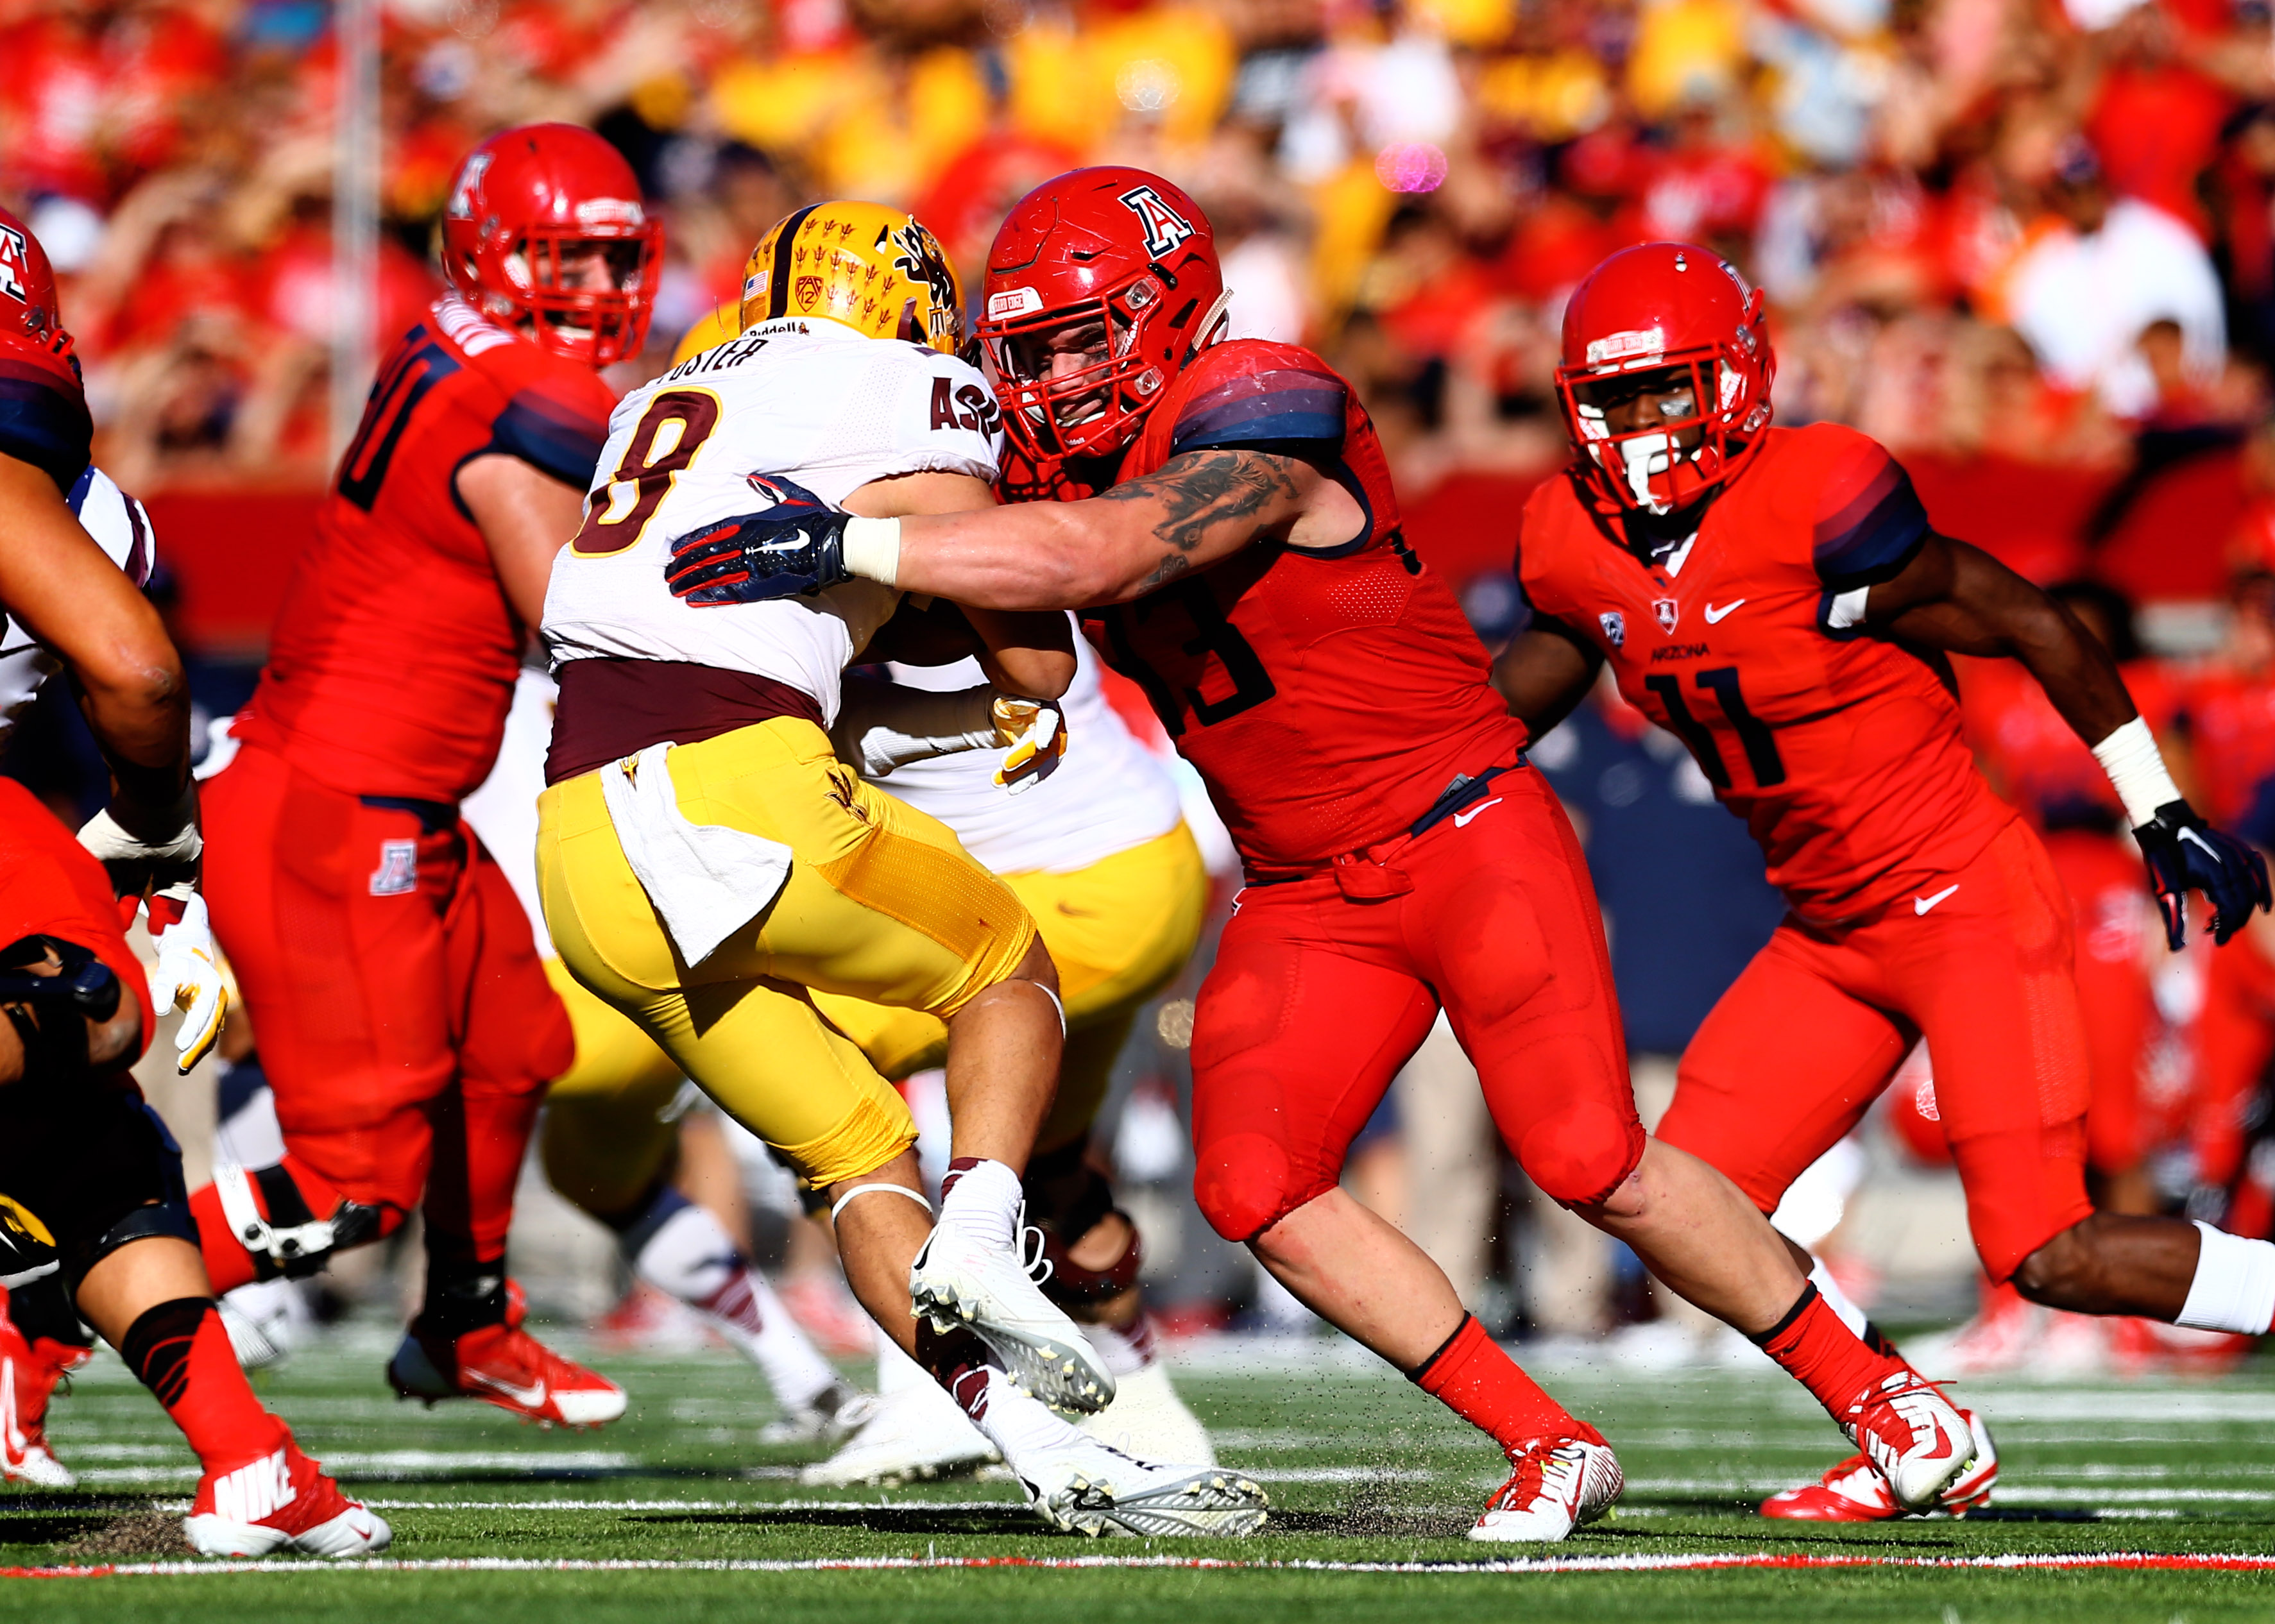 Scooby Wright III is one of the best linebackers, wait, make that - players in the conference, wait, make that - the entire country.